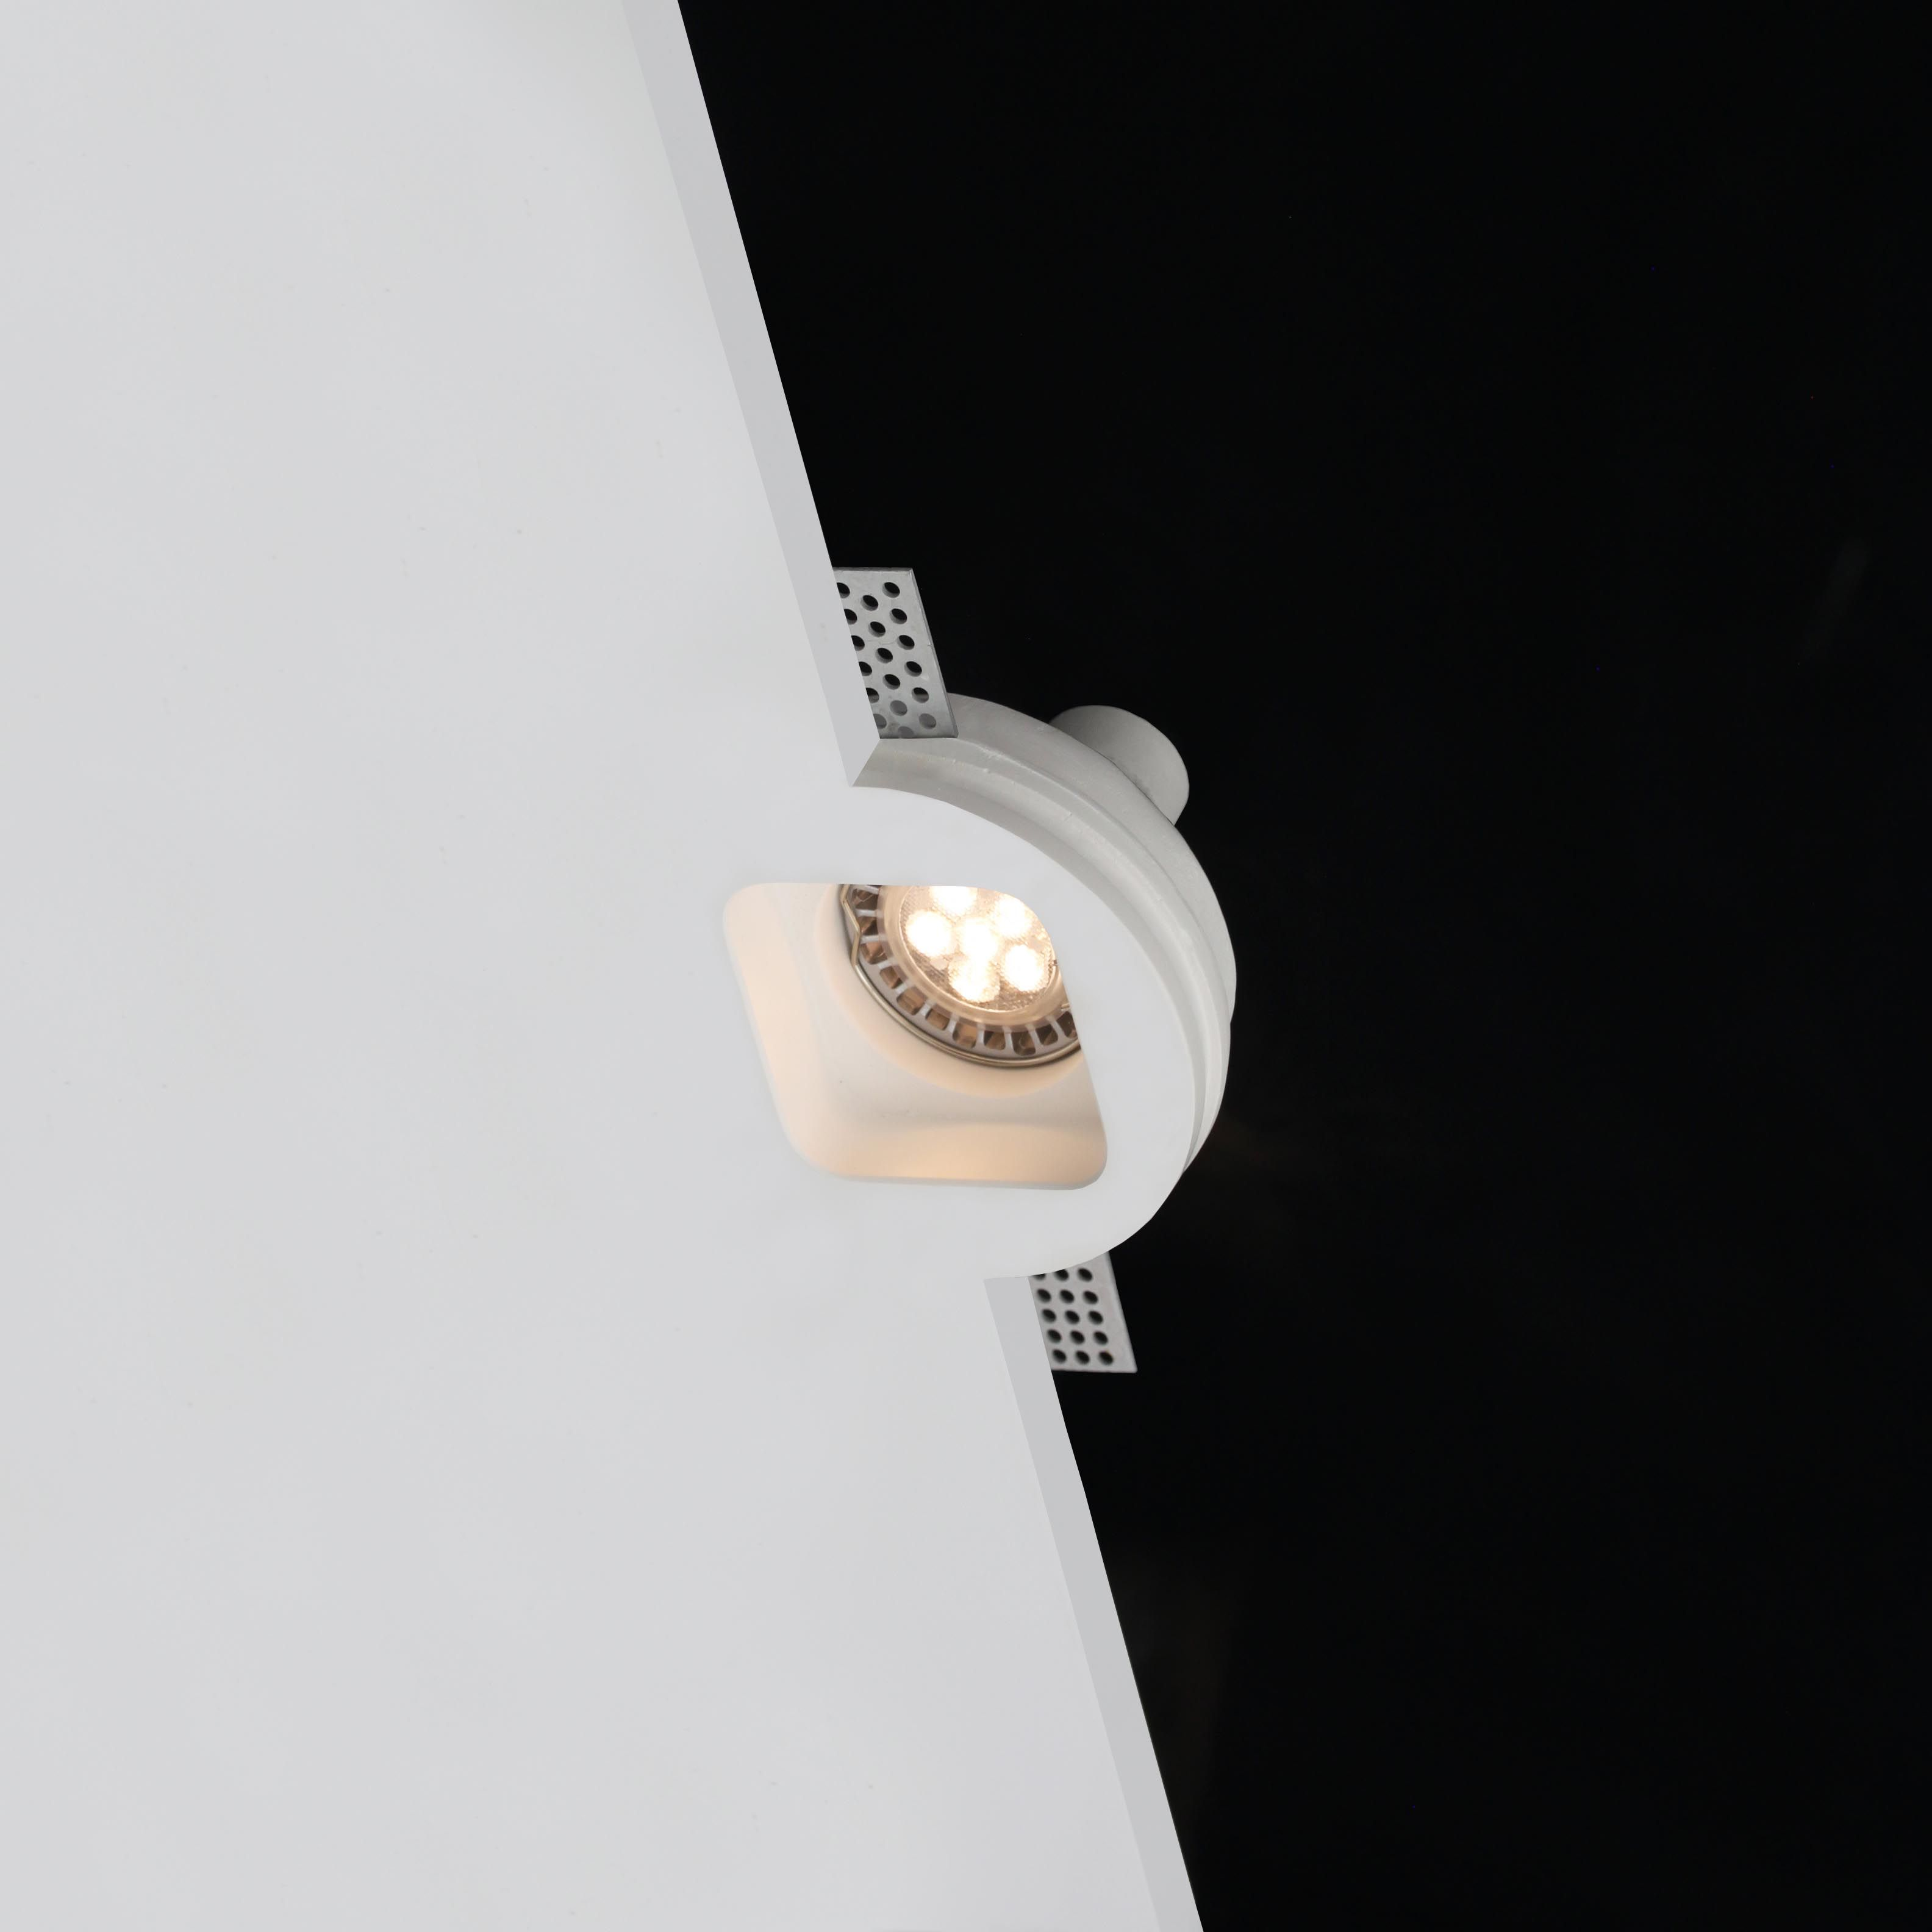 Tornado tf20 flush trimless seamless plaster downlight ceiling tornado integrated lighting model tf20 flush trimless led shallow recessed ceiling downlight shallow recess for areas with limited overhead ceiling space aloadofball Images